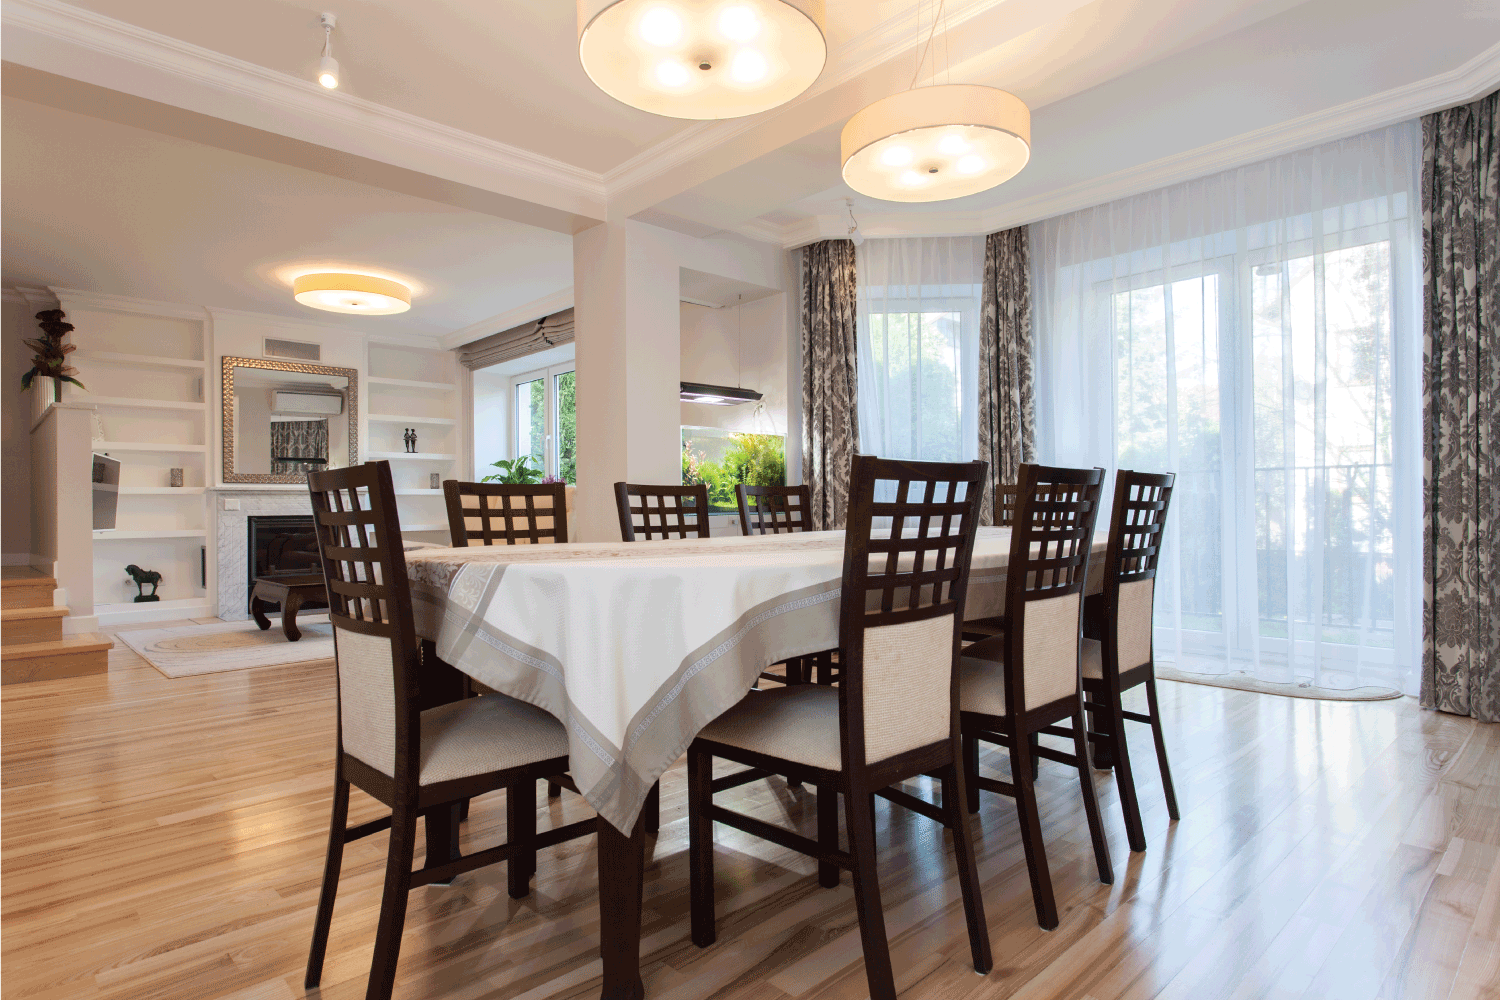 Elegant prepared table in stylish dining room with light colored tablecloth, light flowy curtains